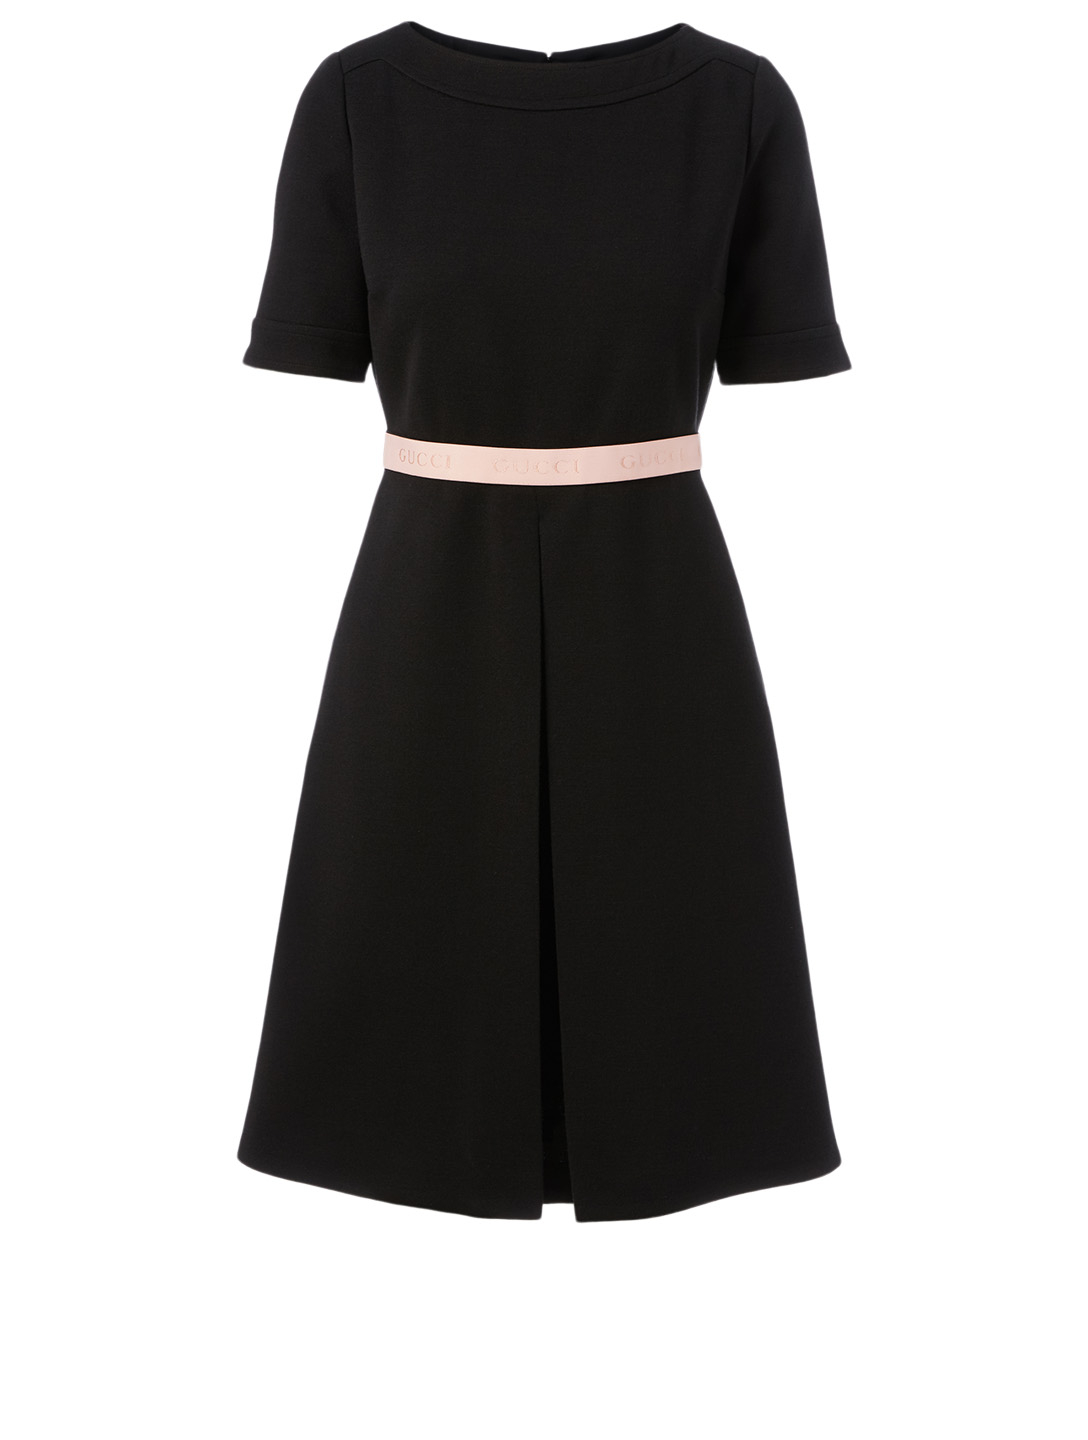 GUCCI Wool-Blend Dress With Logo Band Women's Black